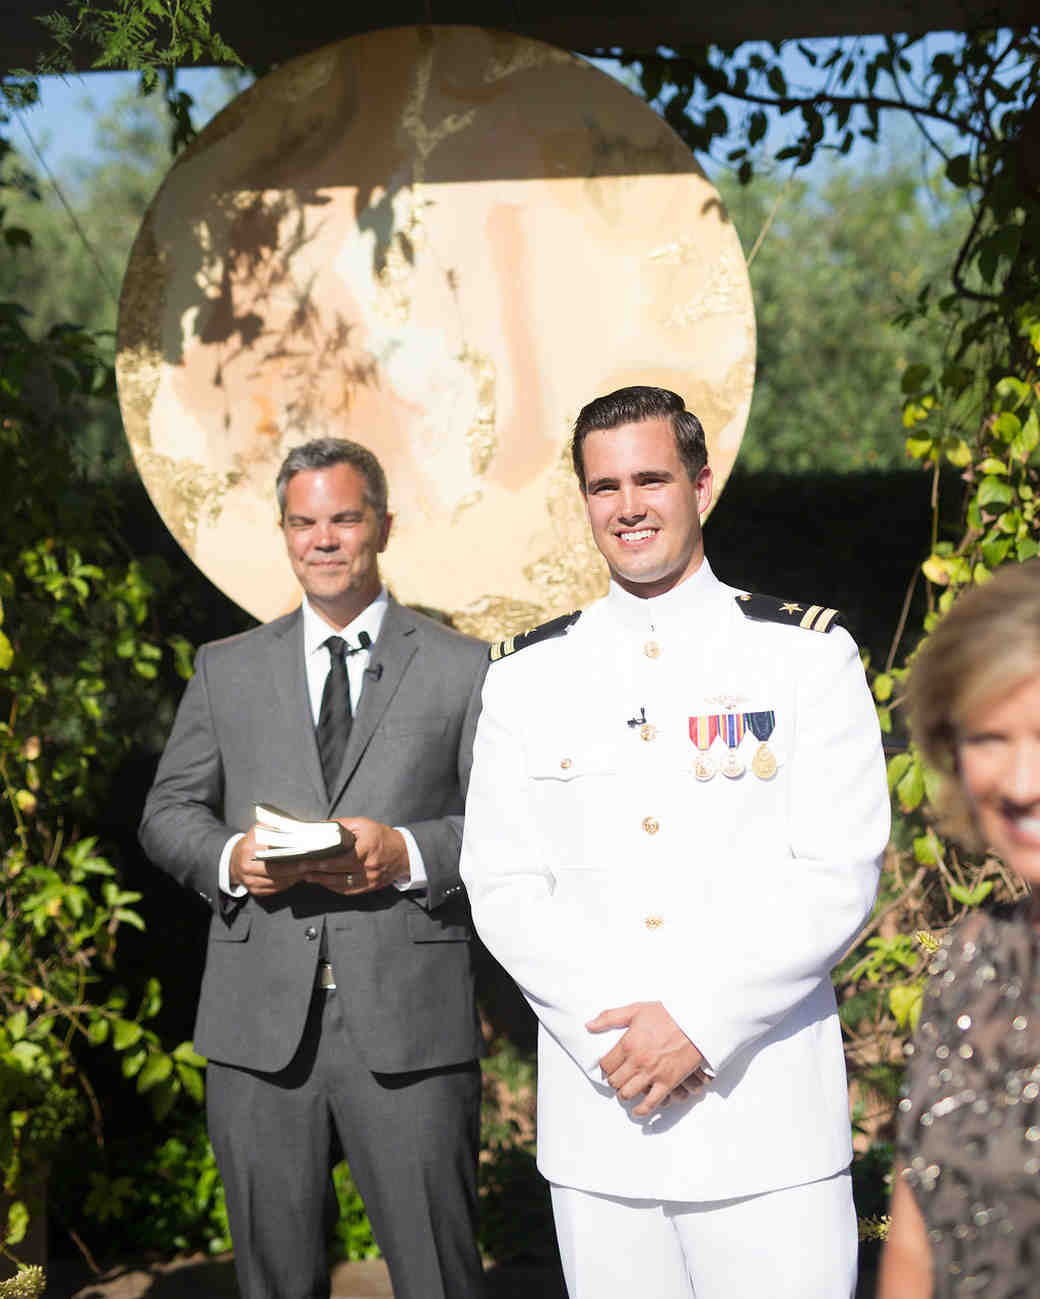 paige zack wedding groom and officiant